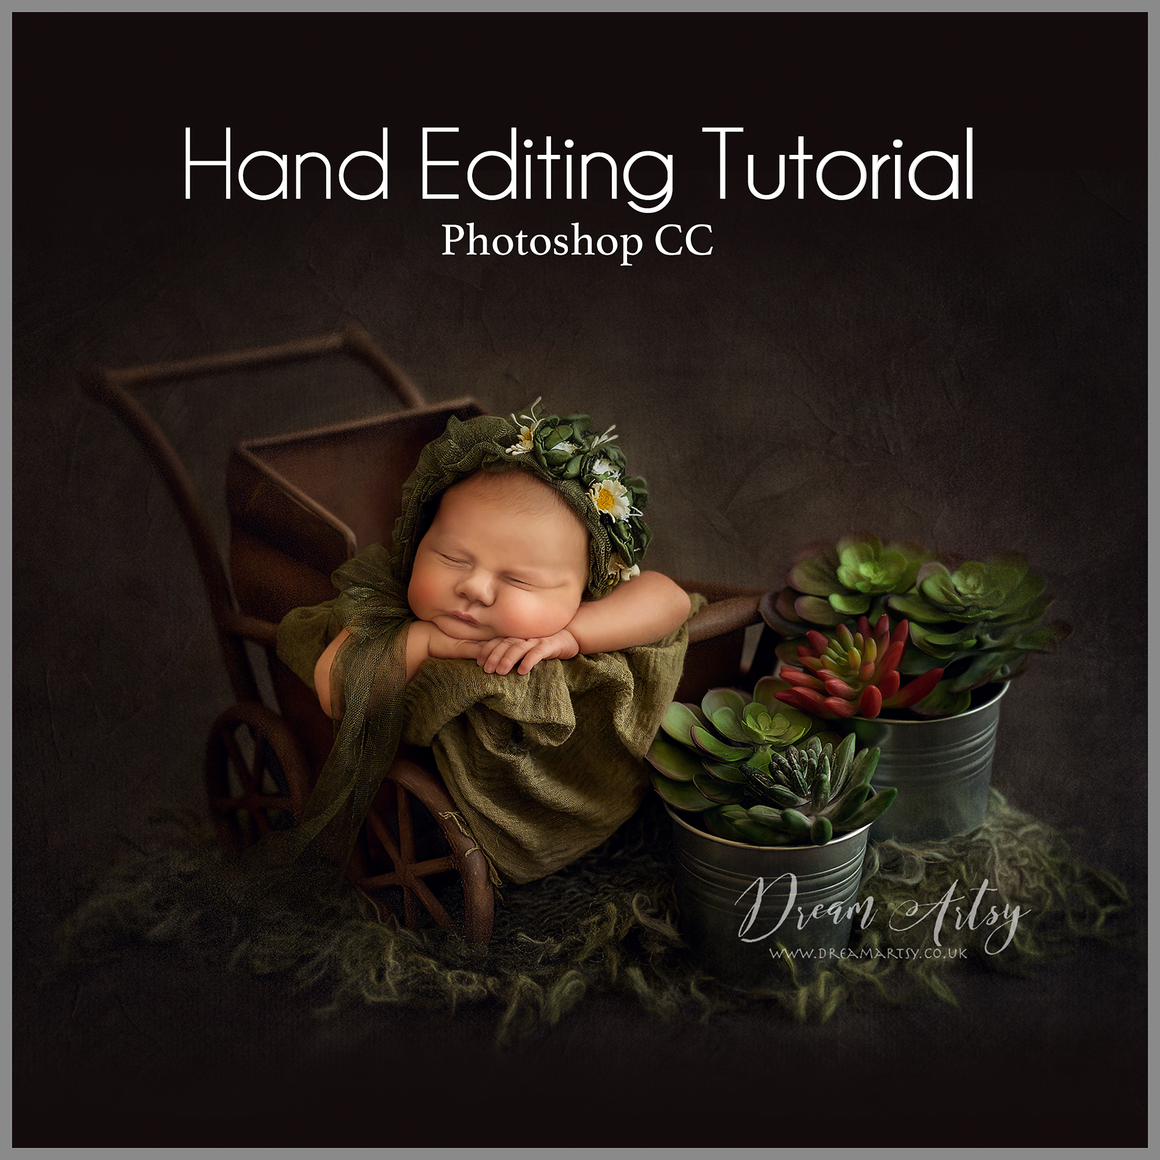 Girl & Succulents Editing Tutorial | Photoshop Class - Dream Artsy Actions Tutorials